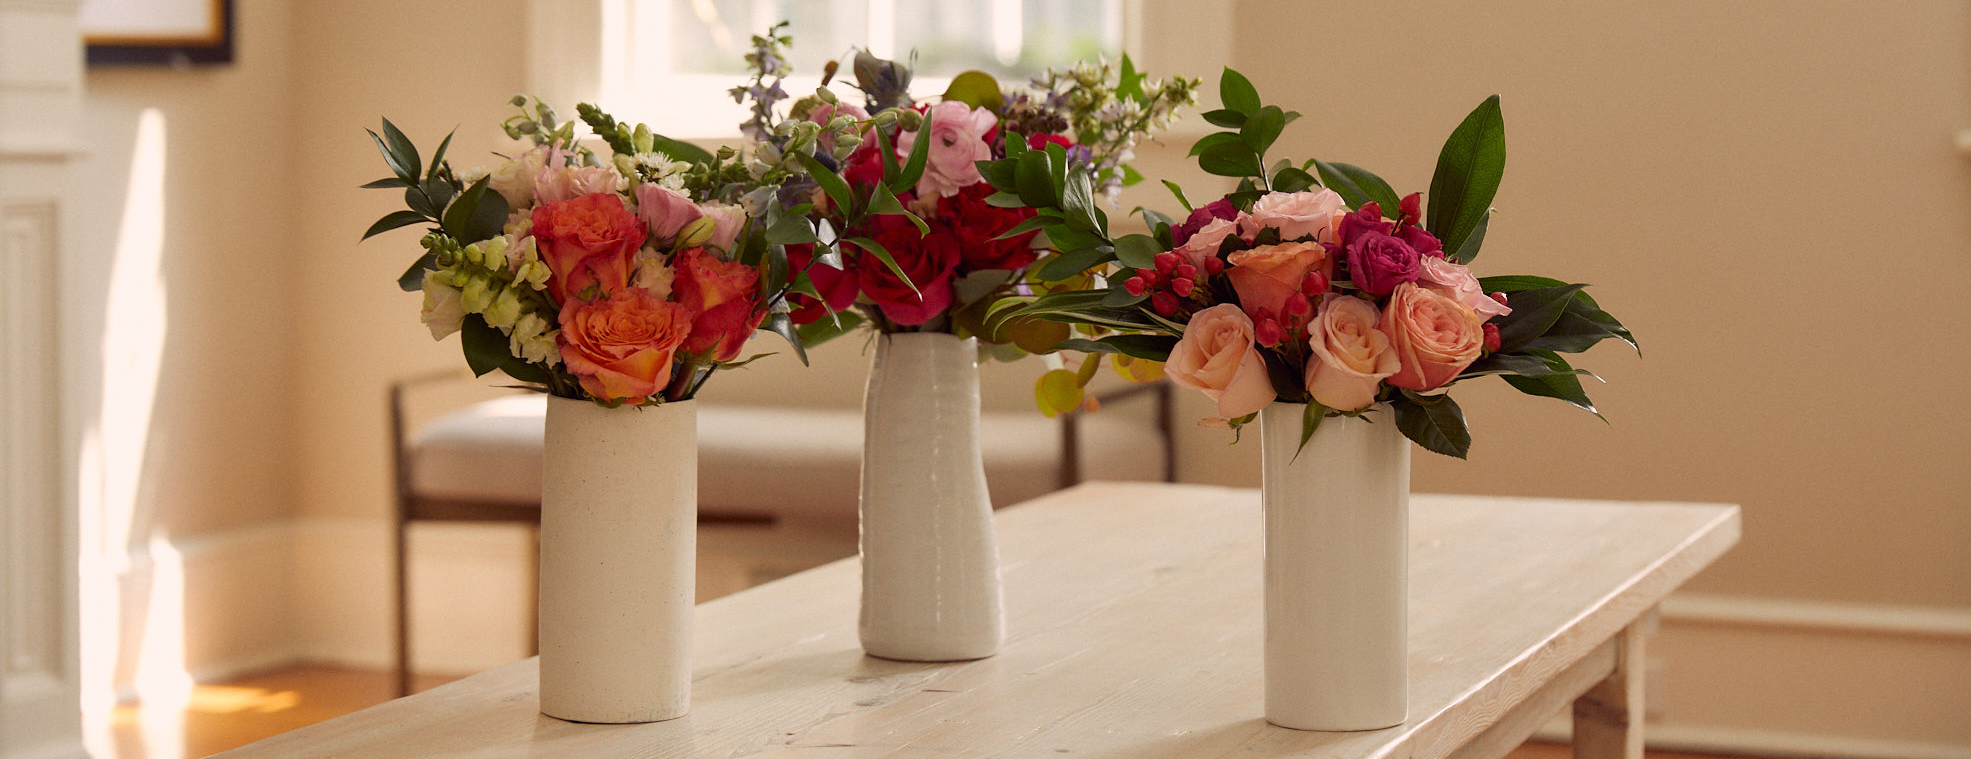 Three floral bouquets from the Breast Cancer Awareness Collection